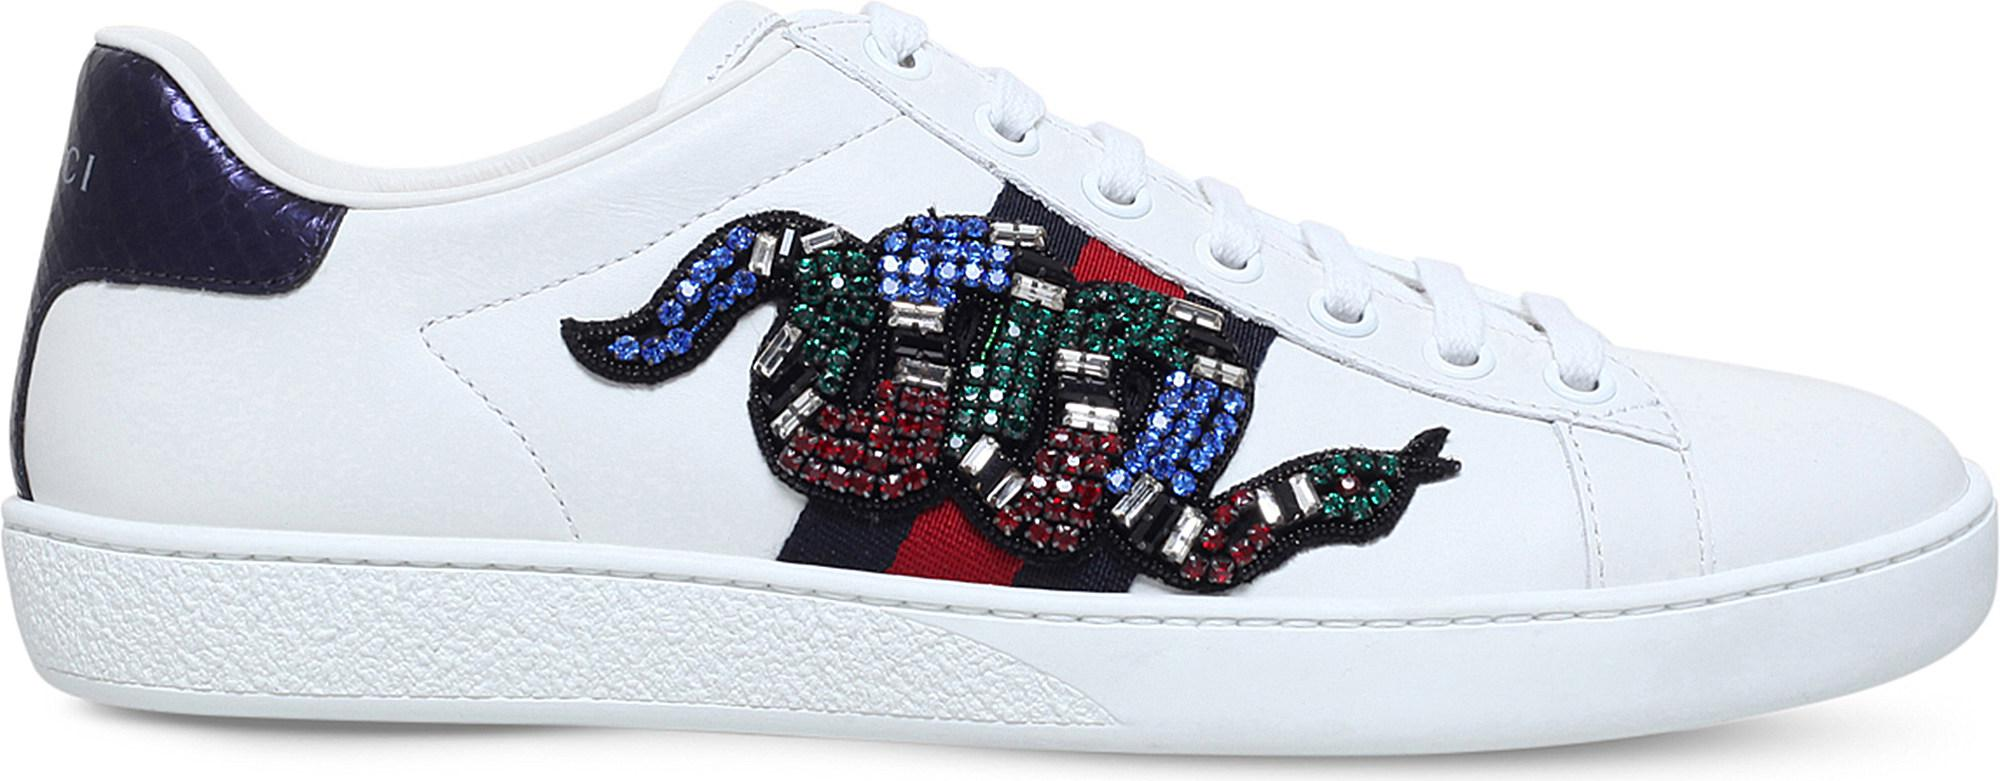 Gucci Ace Snake Embroidered Leather Trainers In White